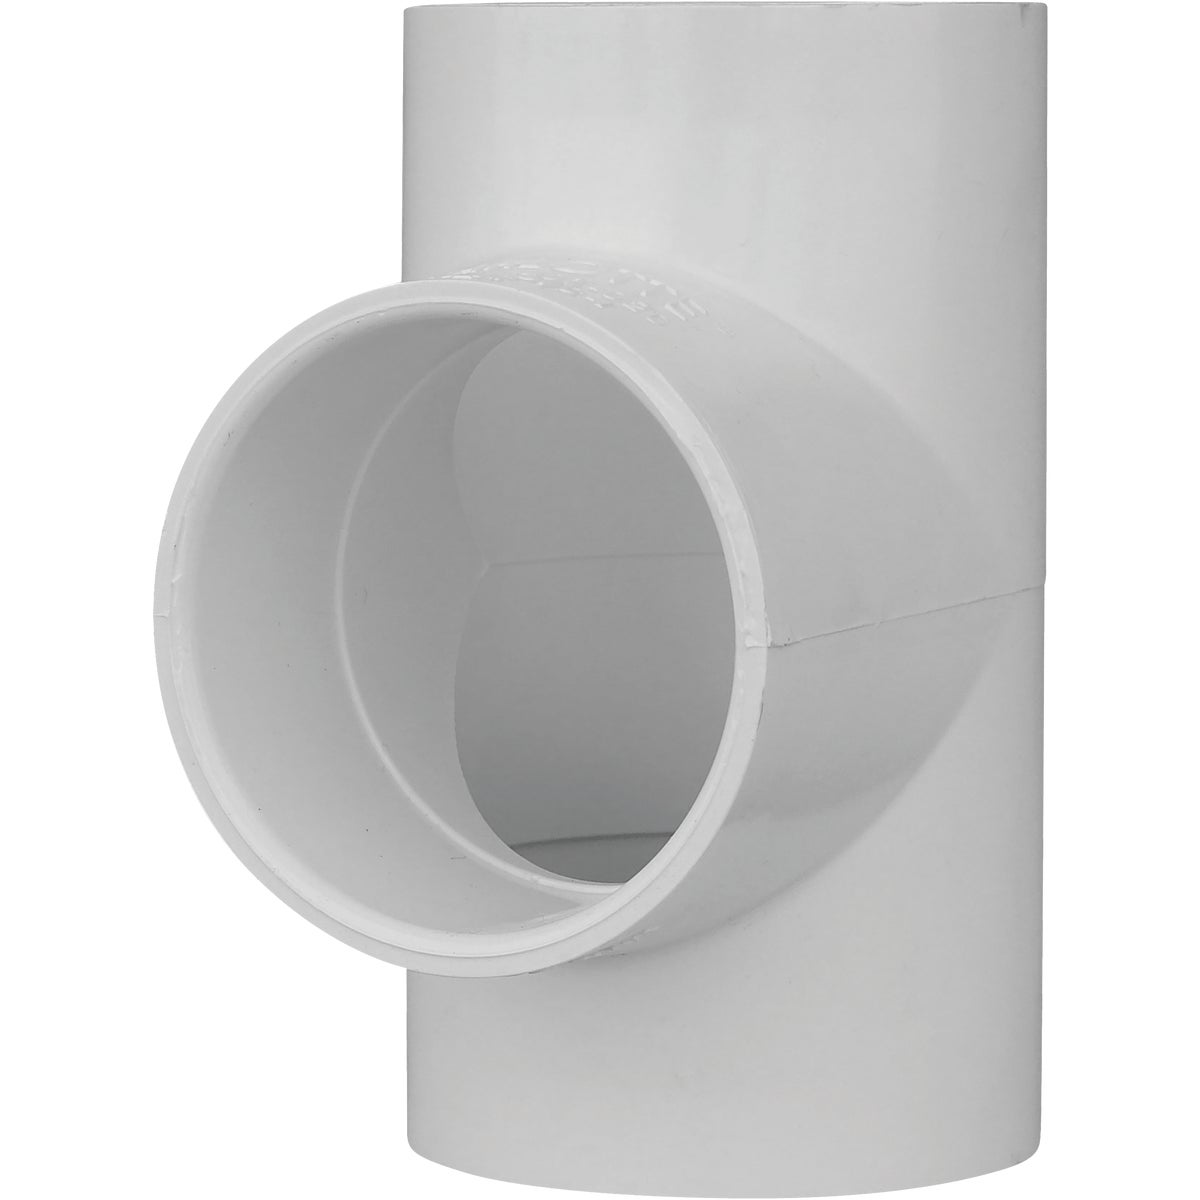 "2"" SCH40 PVC TEE - 31420 by Genova Inc"